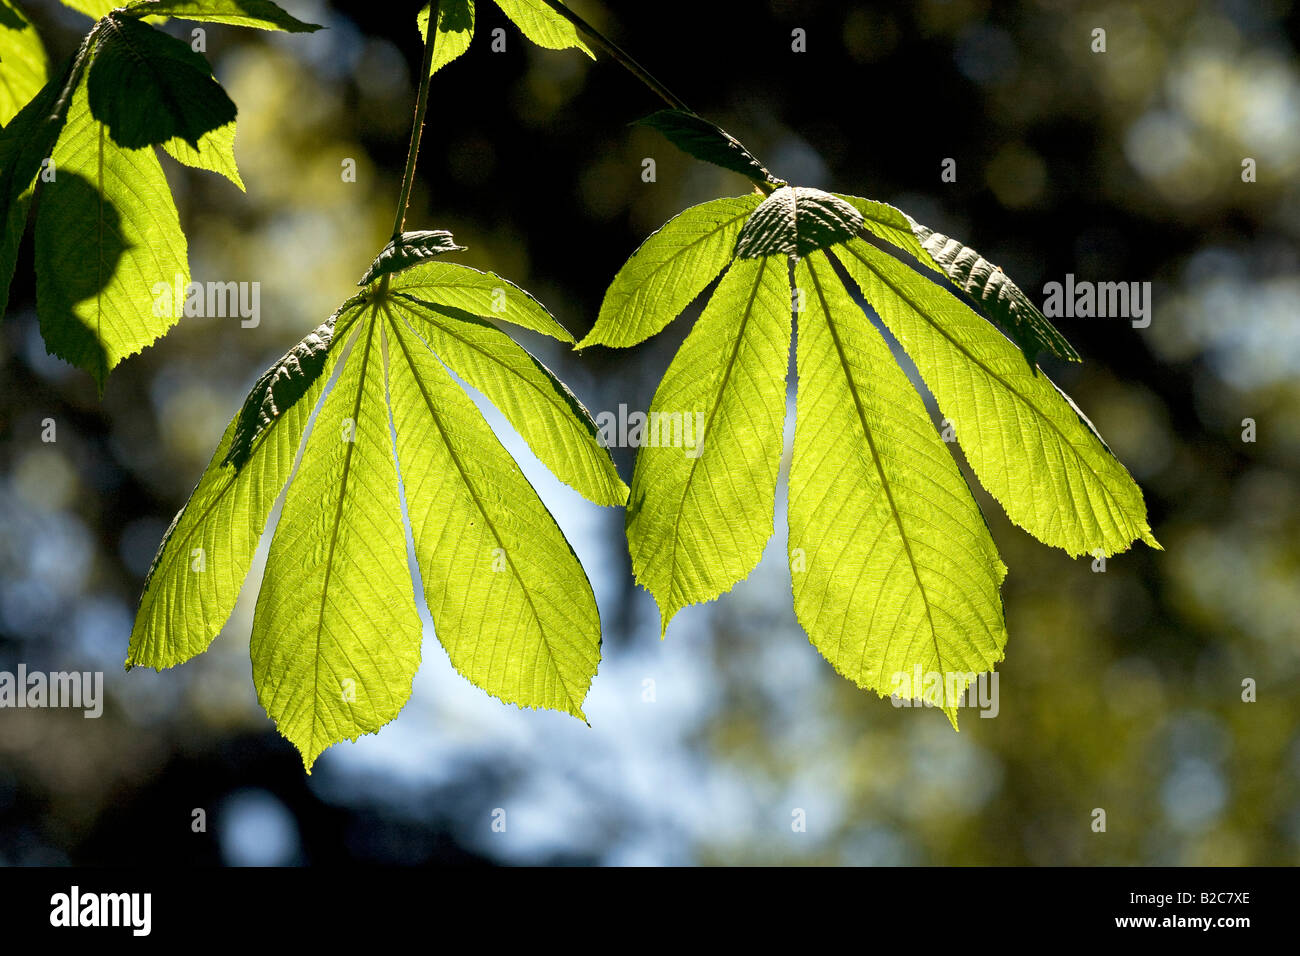 Horse-chestnut or Conker tree (Aesculus hippocastanum), tree with spring growth, backlit leaves, visible leaf veins - Stock Image